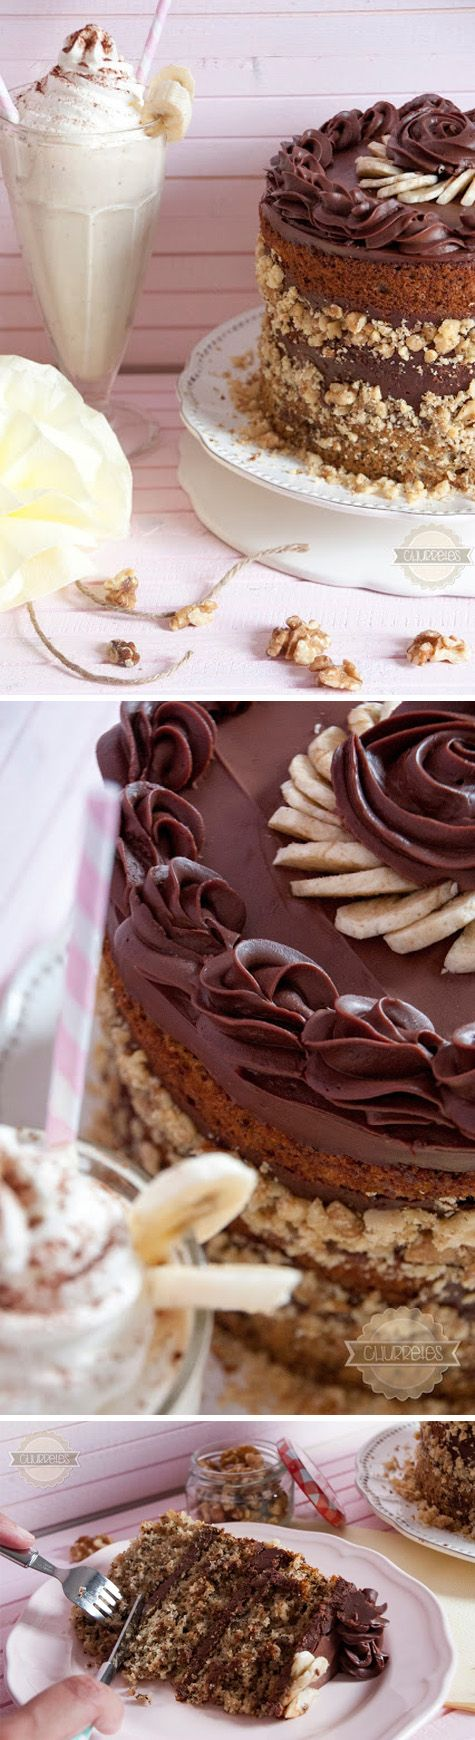 Tarta-layer-chocolate-platano-nueces-pecados-reposteria-2